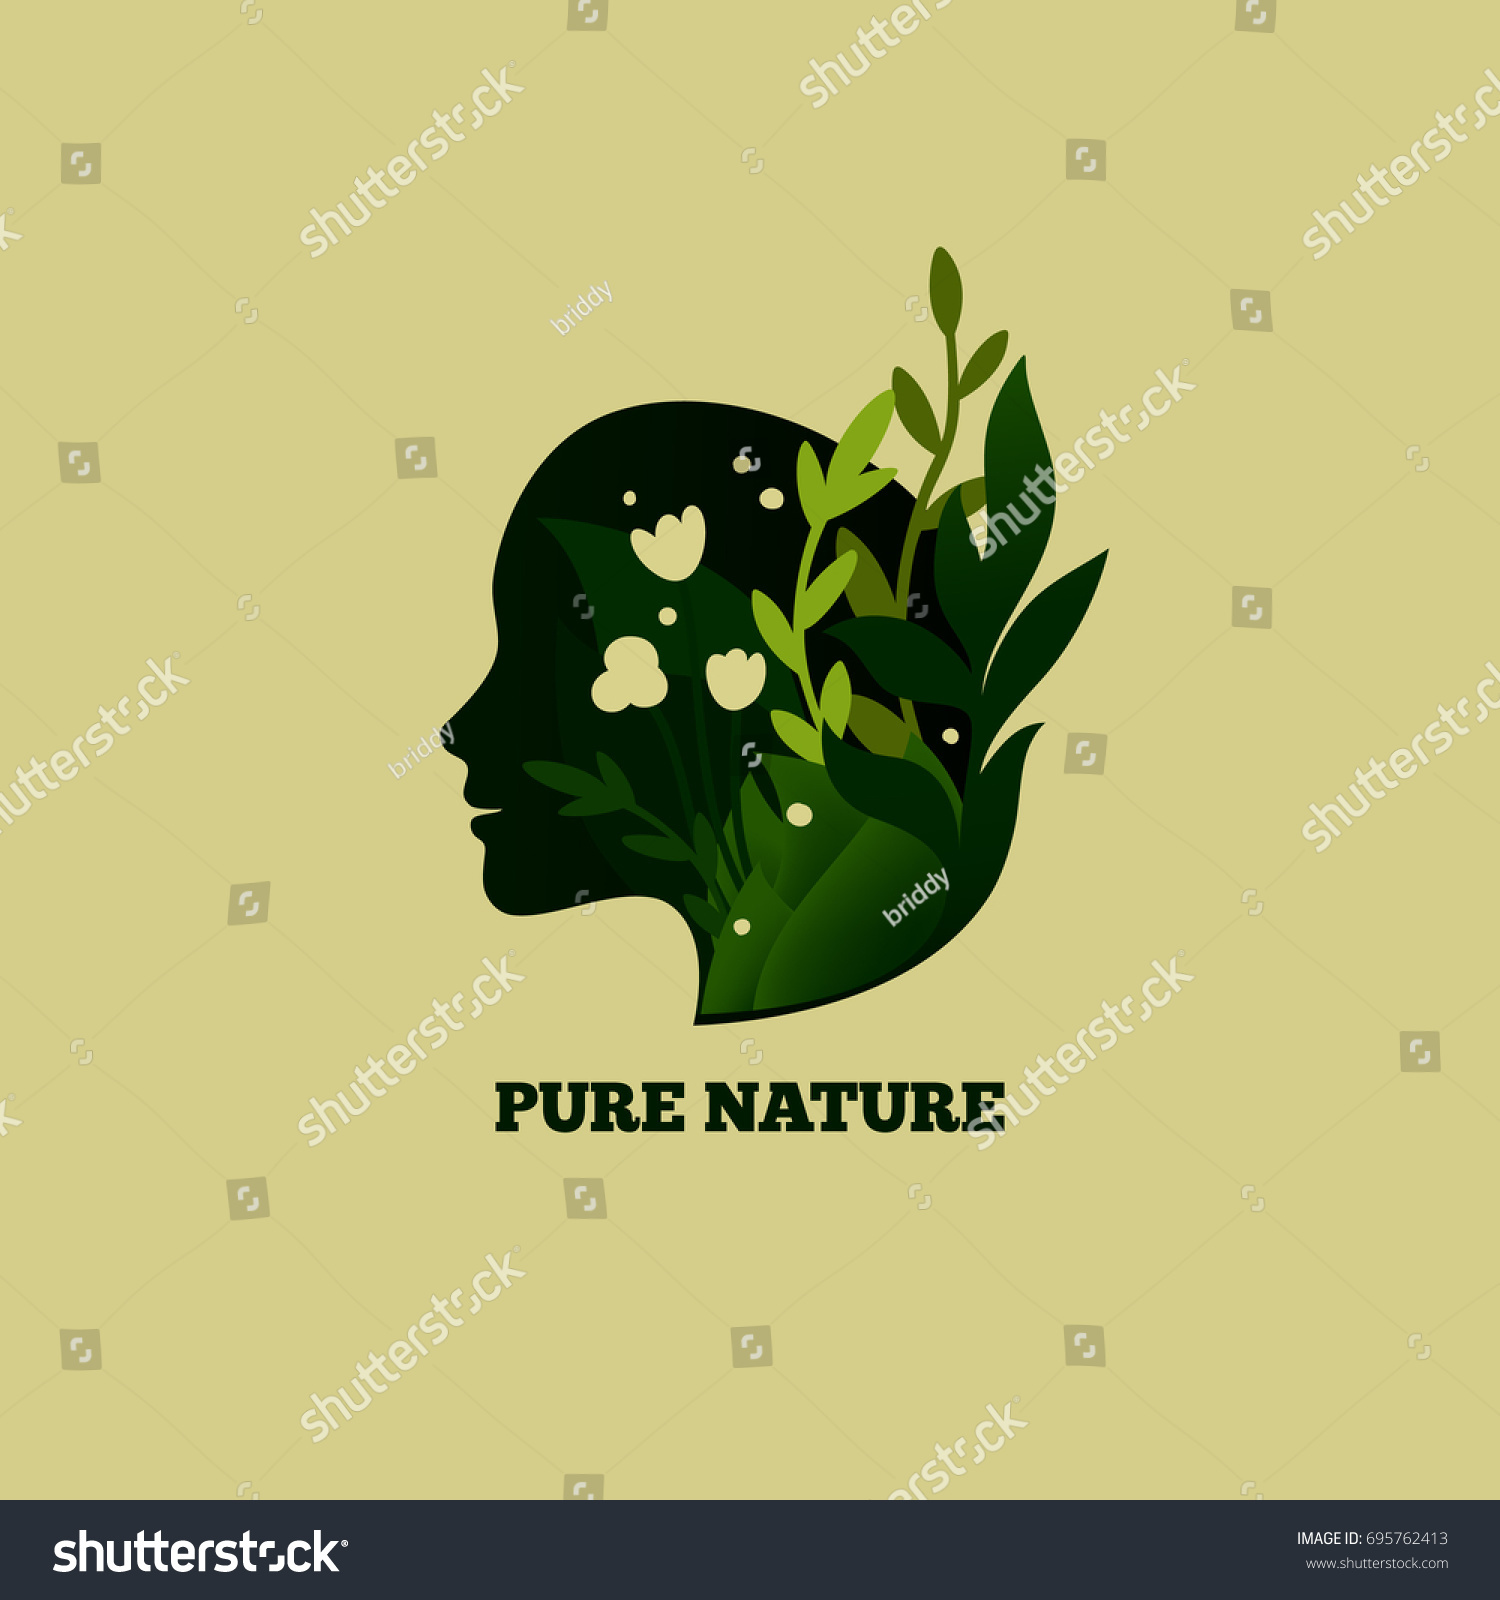 Beautiful Female Profile Flowers Leaves Pure Stock Vector Royalty